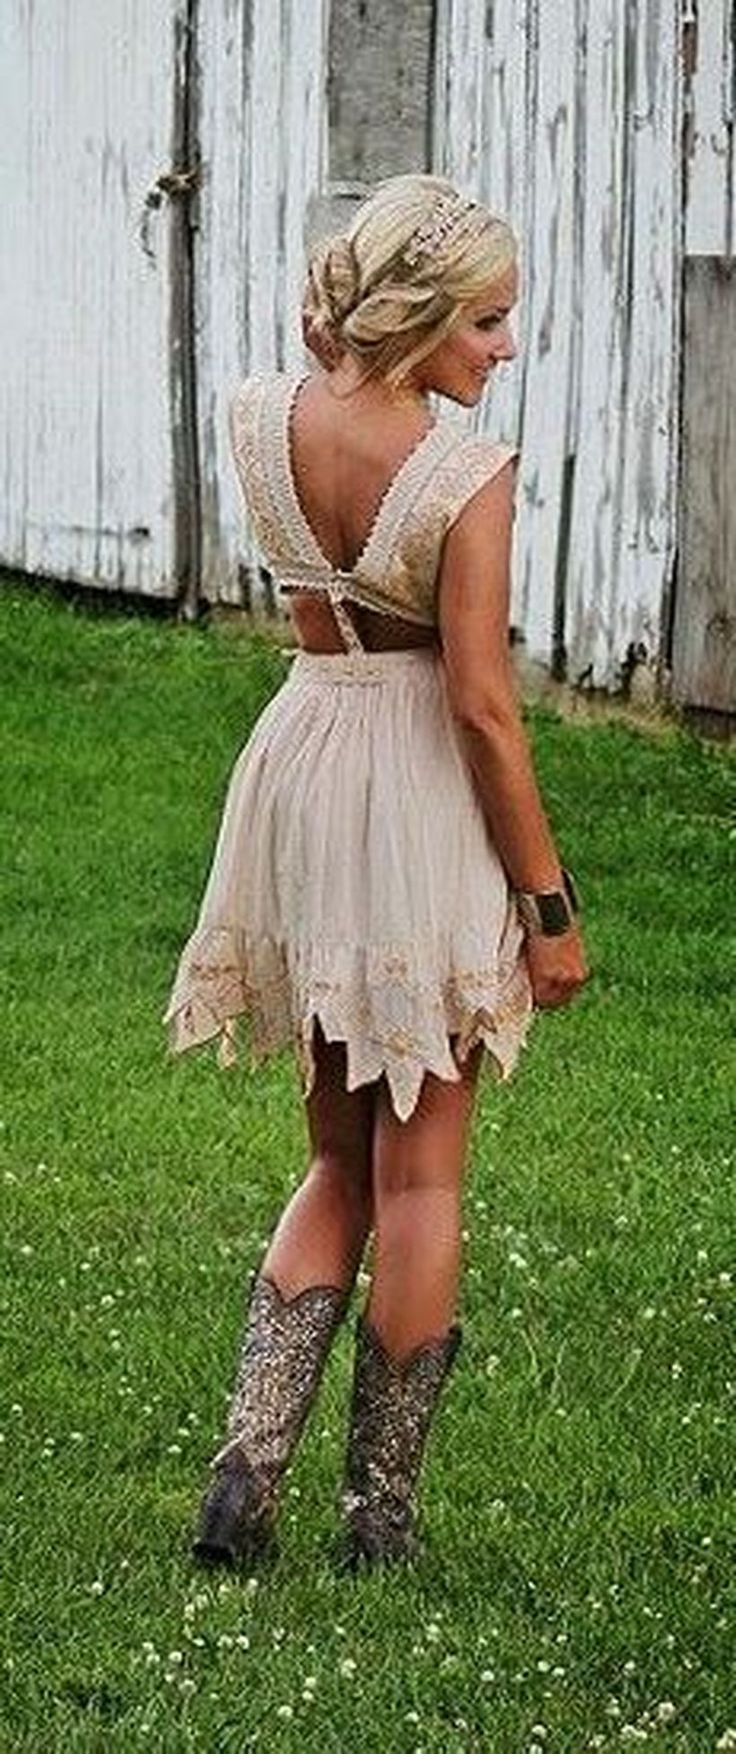 Short western style wedding dresses   Vintage Wedding Day Outfit with Country Boots fasbest